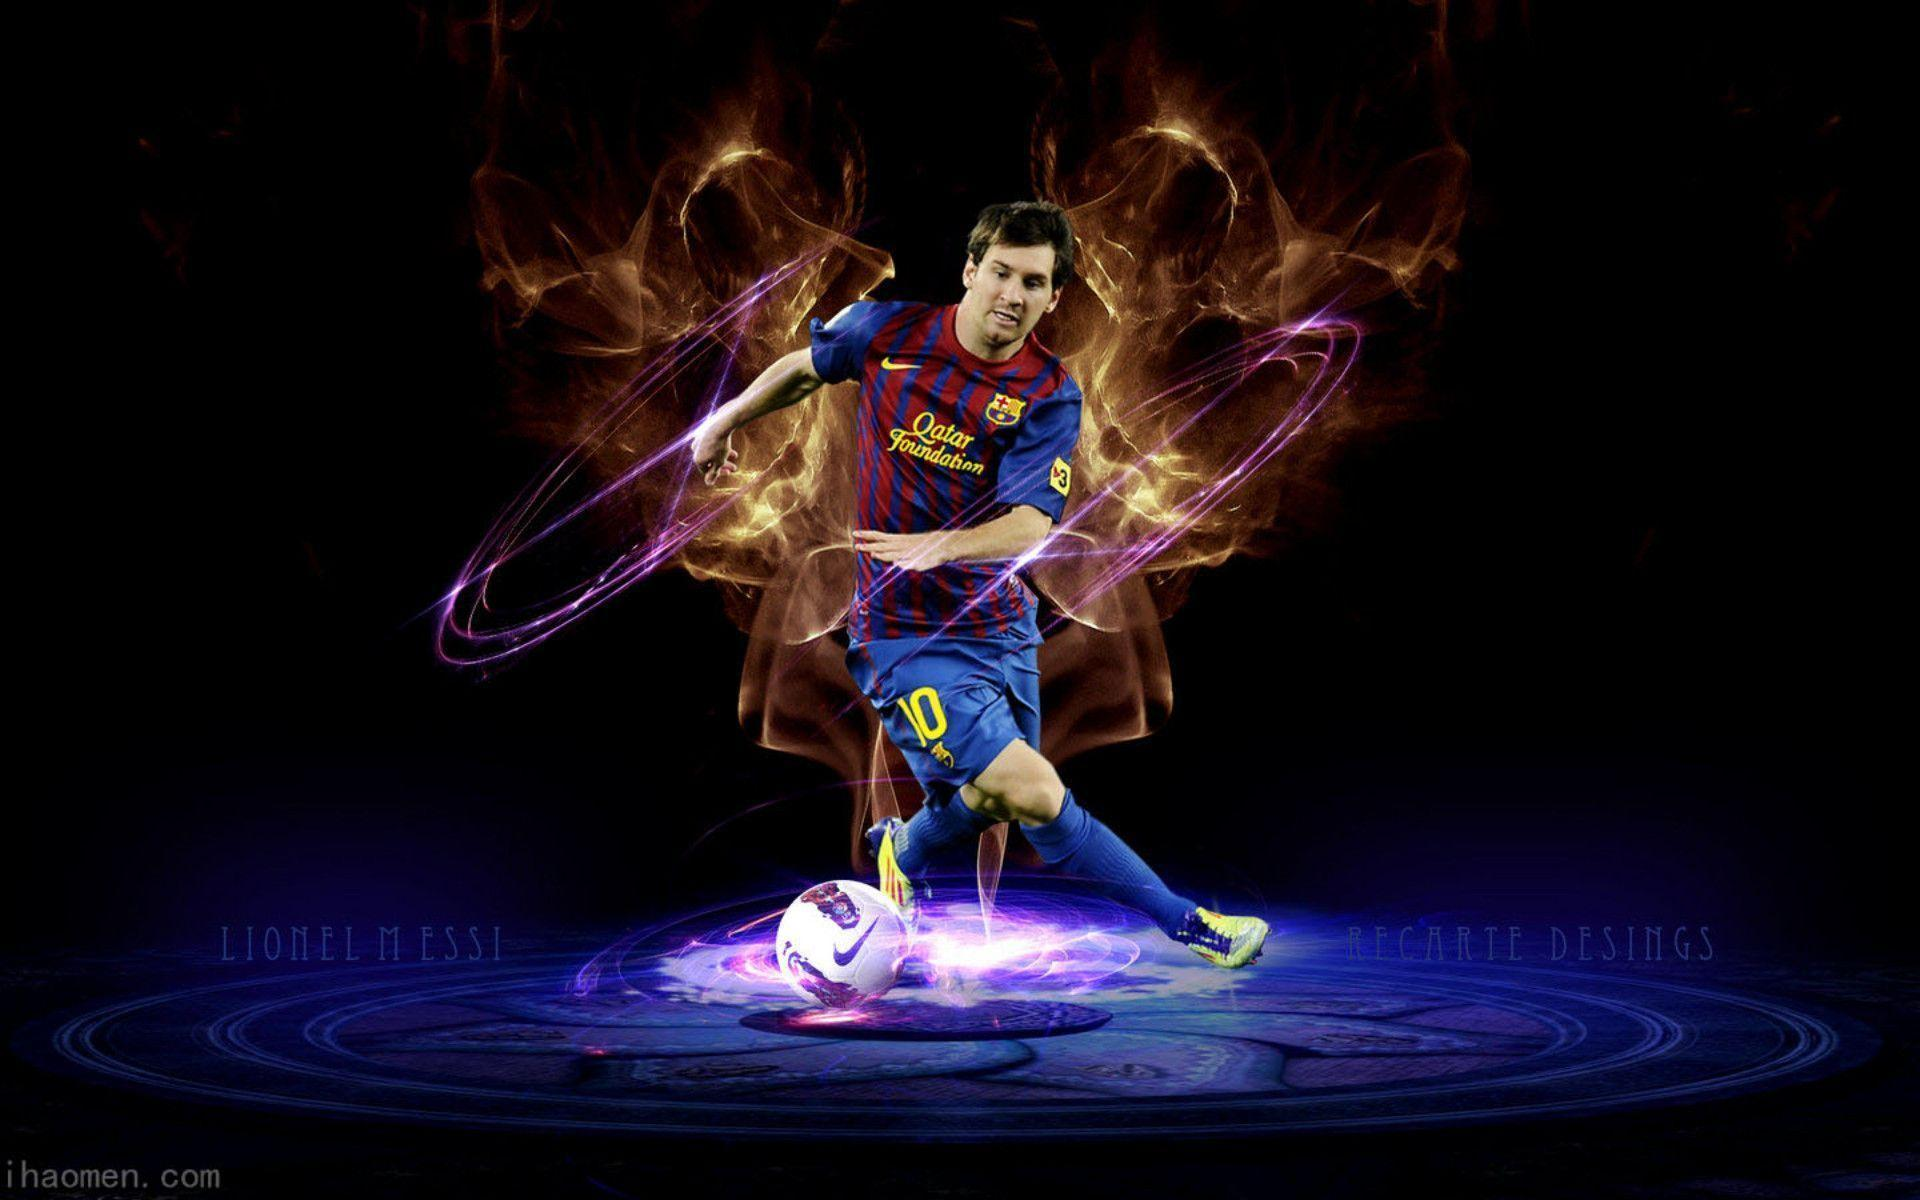 Cool Sports Backgrounds: Cool Soccer Backgrounds